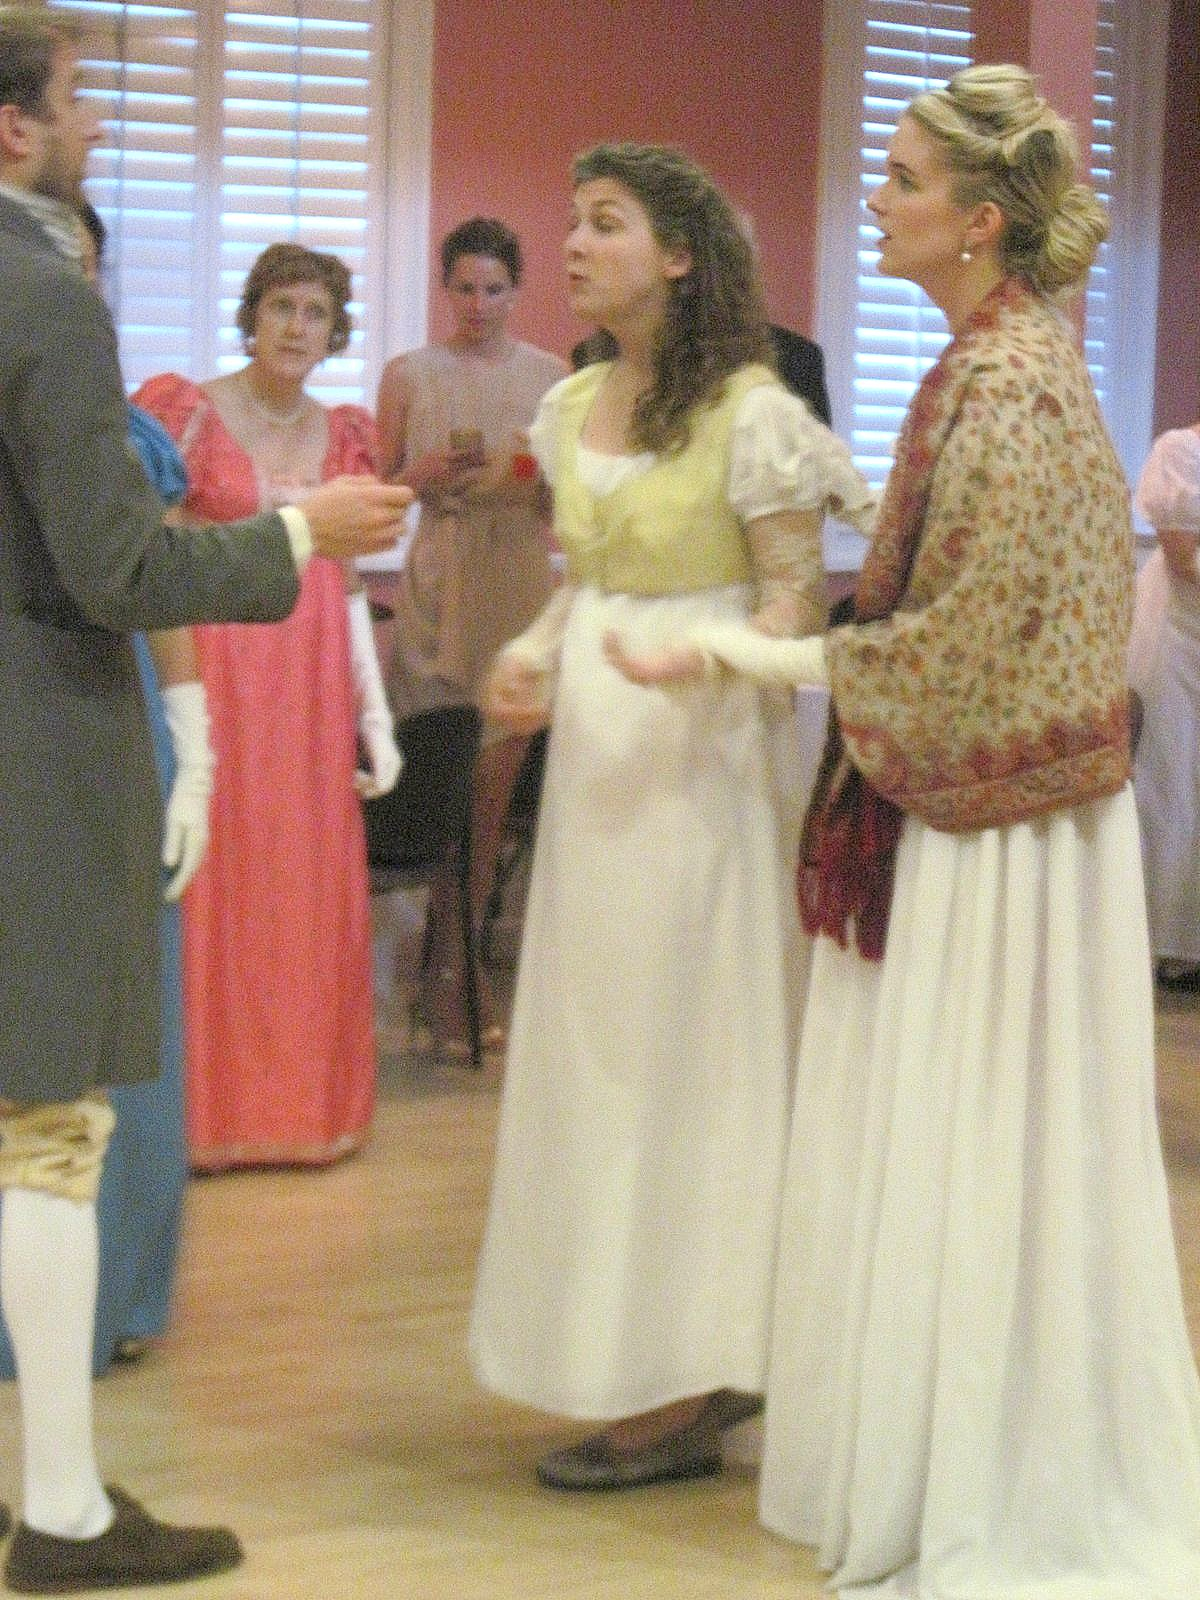 sense and sensibility jane austen in vermont drama at the sense and sensibility ball